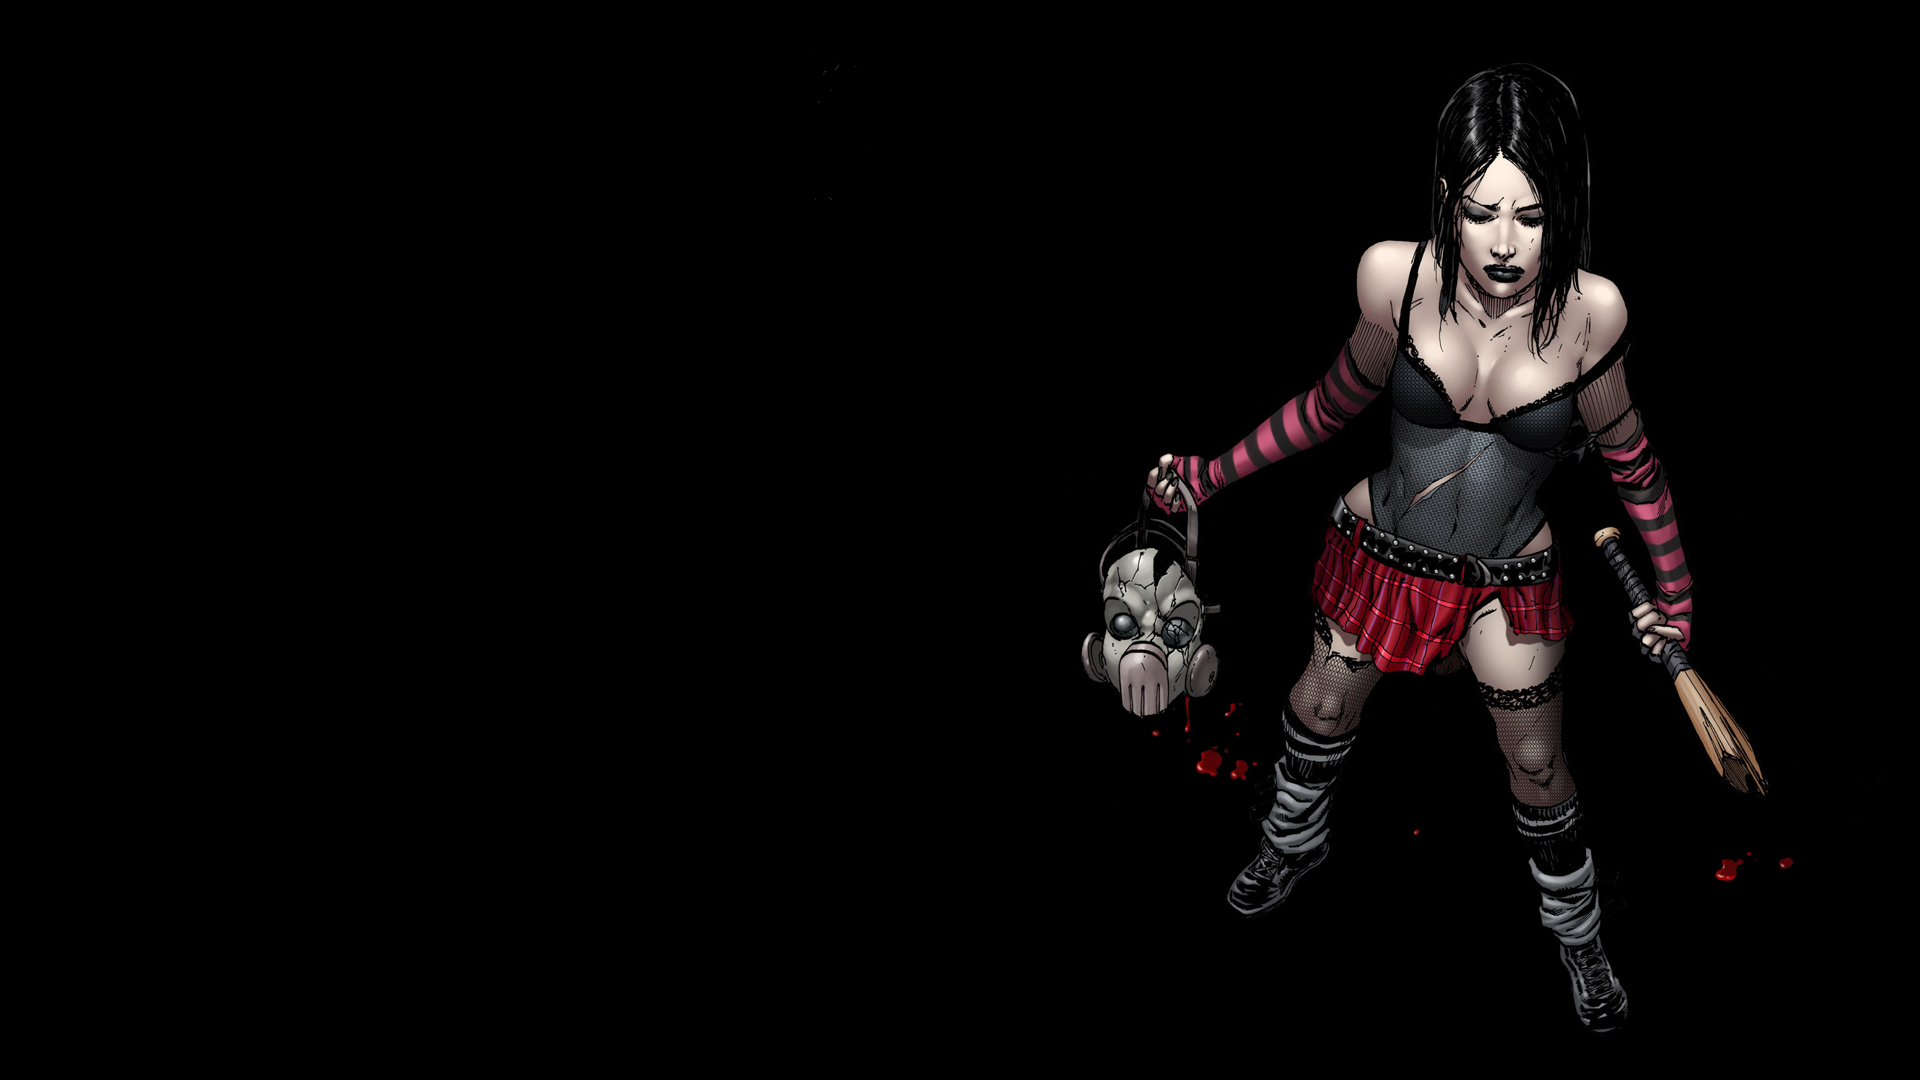 Hacker Iphone Wallpaper Hack Slash Full Hd Wallpaper And Background 1920x1080